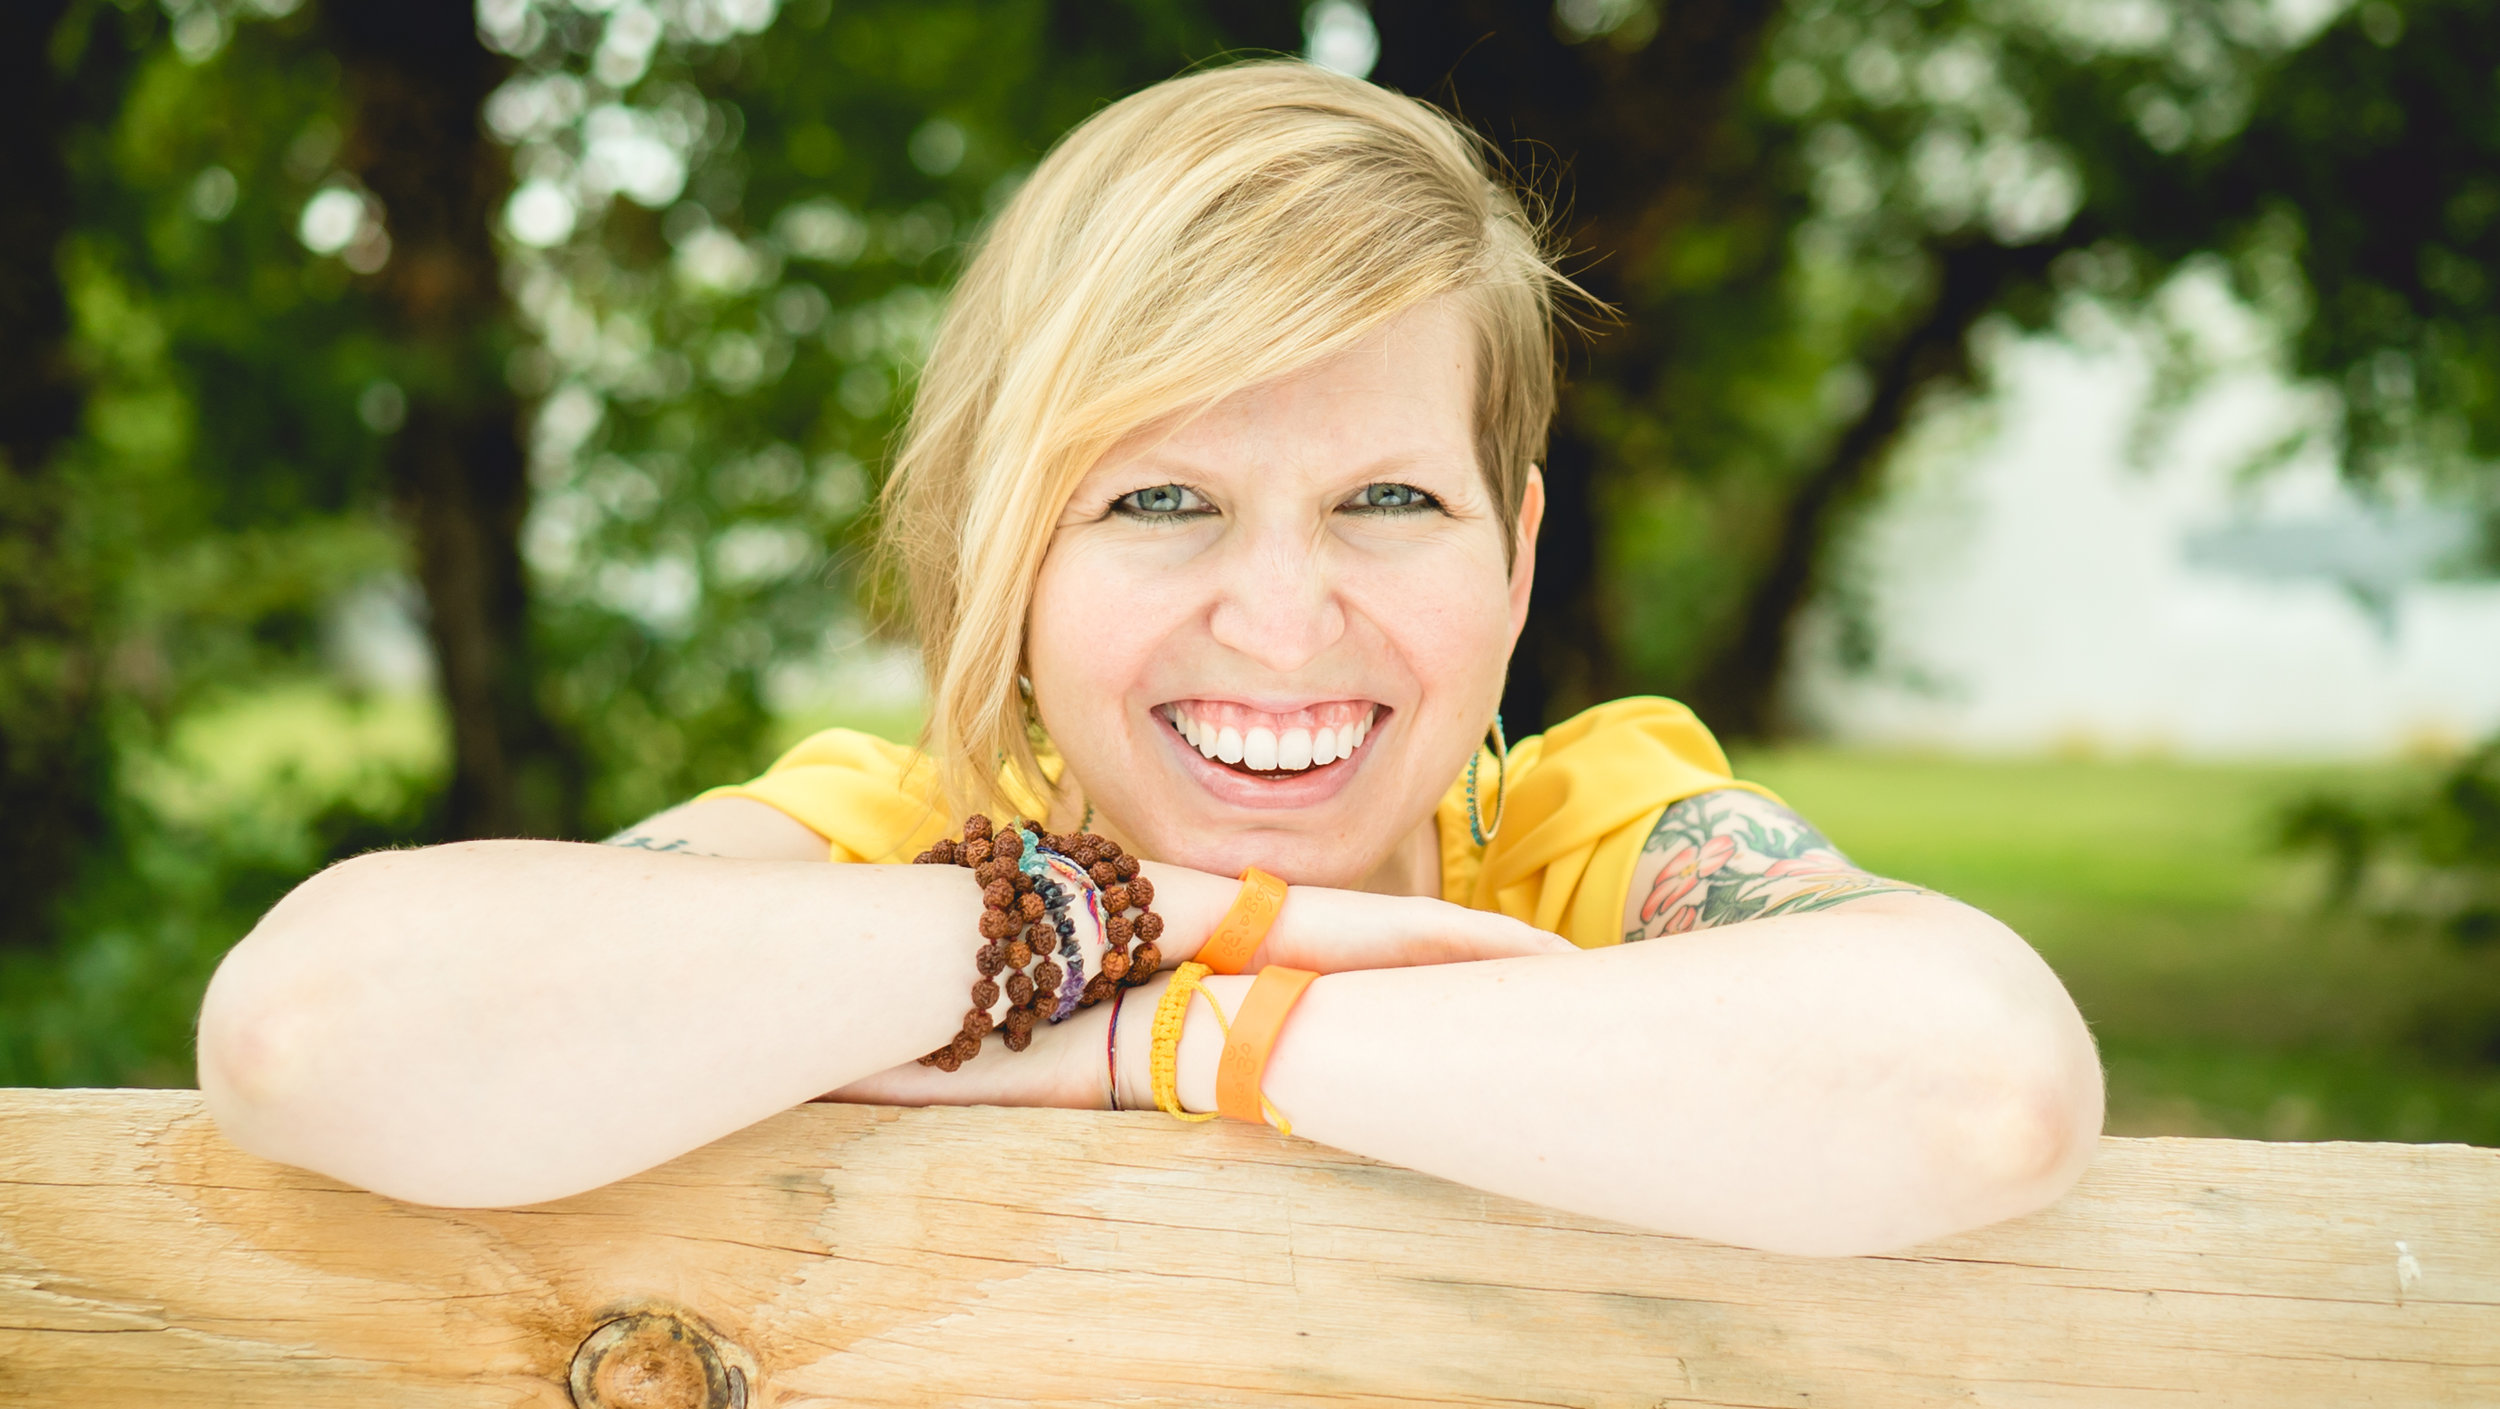 Hello! Let's chat - You can reach me at: marci@marcimoberg.comI look forward to hearing from you!much love,Marci